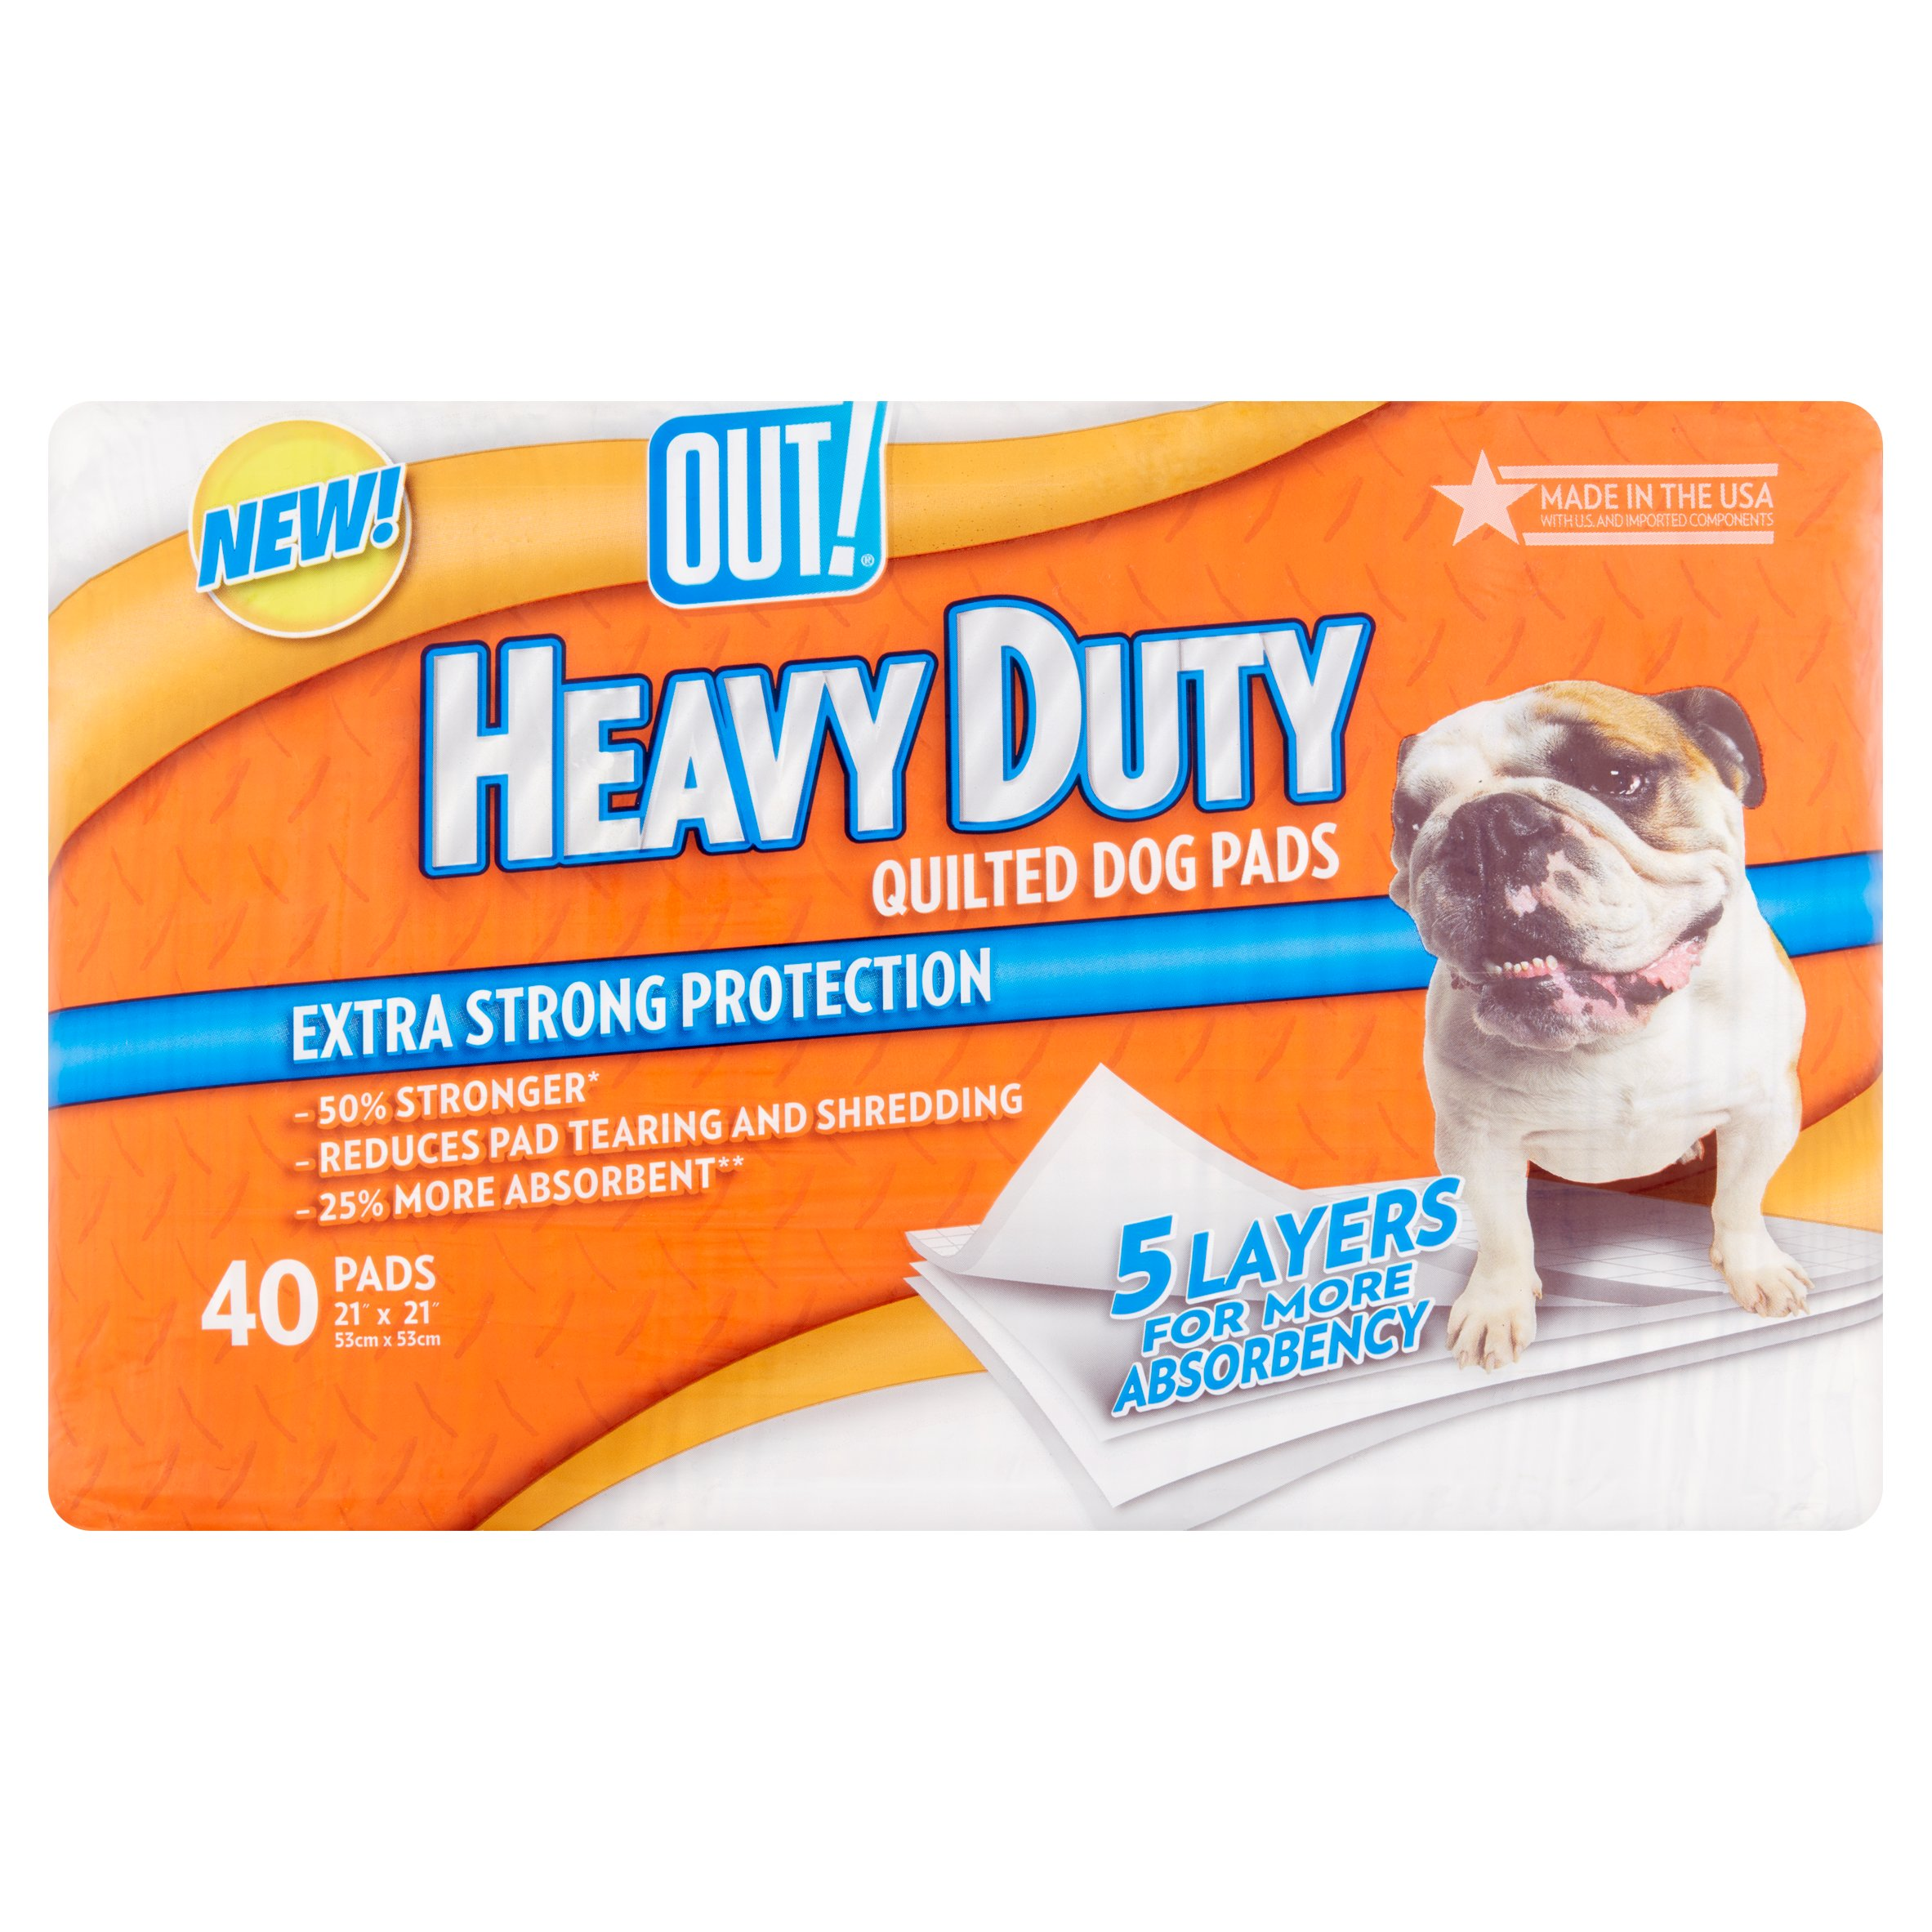 Out! heavy duty quilted dog pads, 21 in x 21 in, 40 count